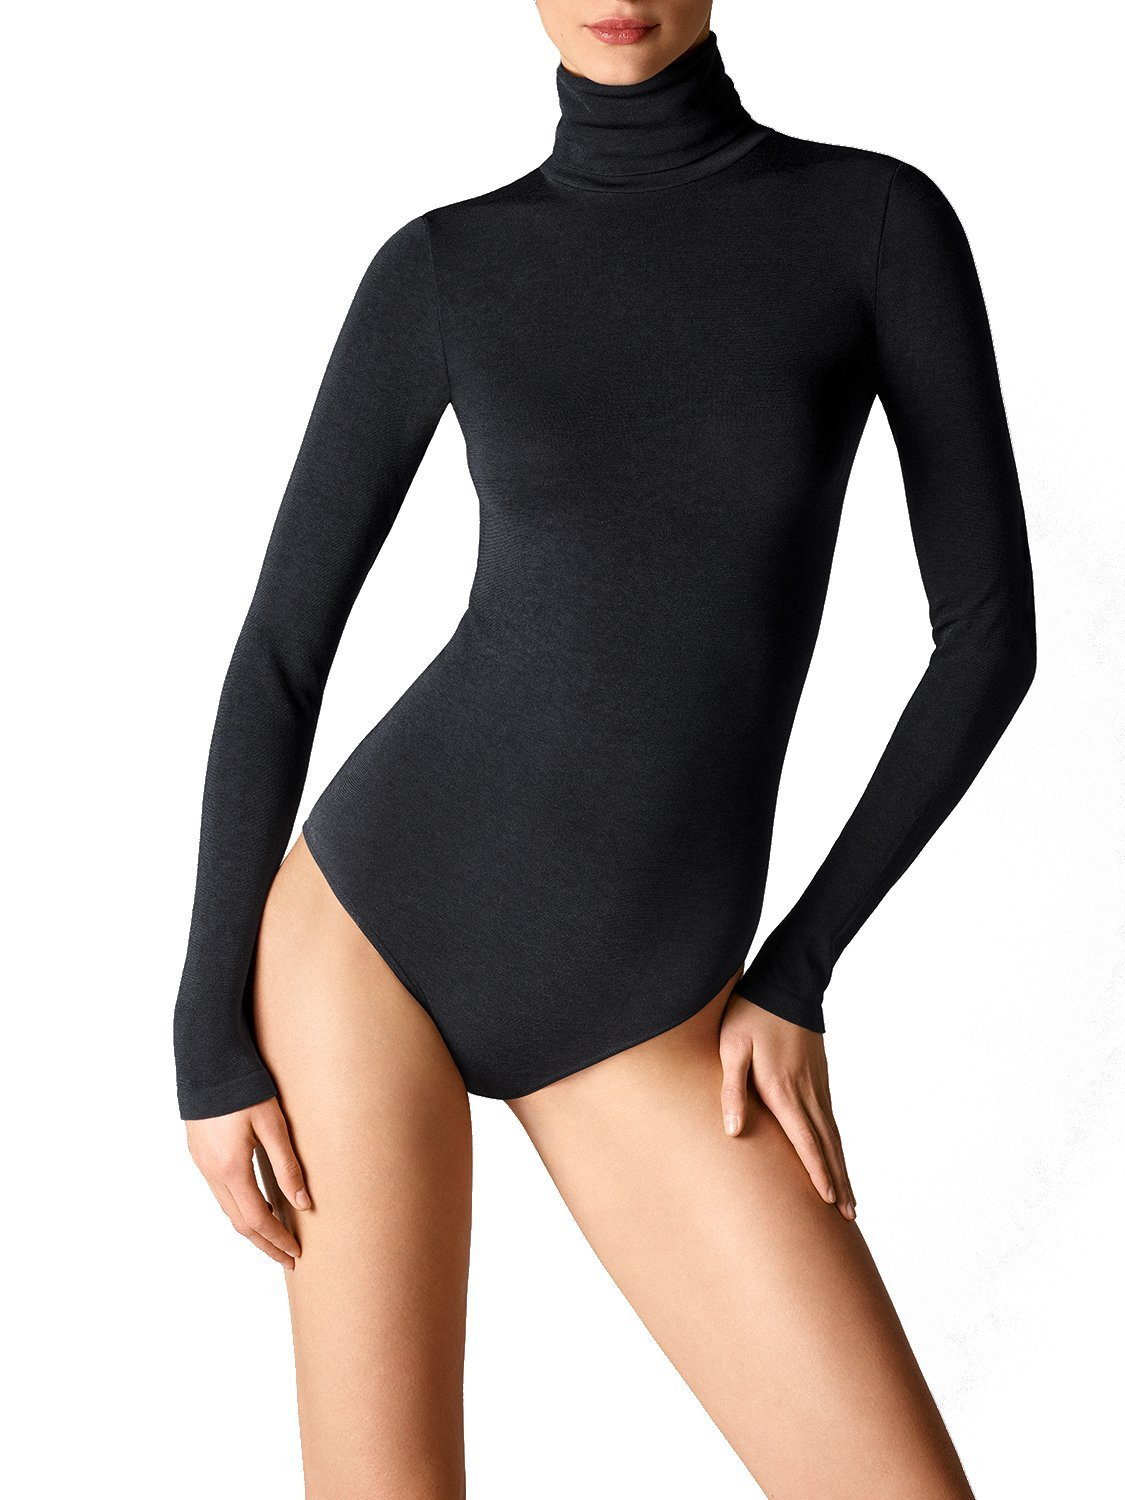 Wolford Women's Colorado Bodysuit Black Small